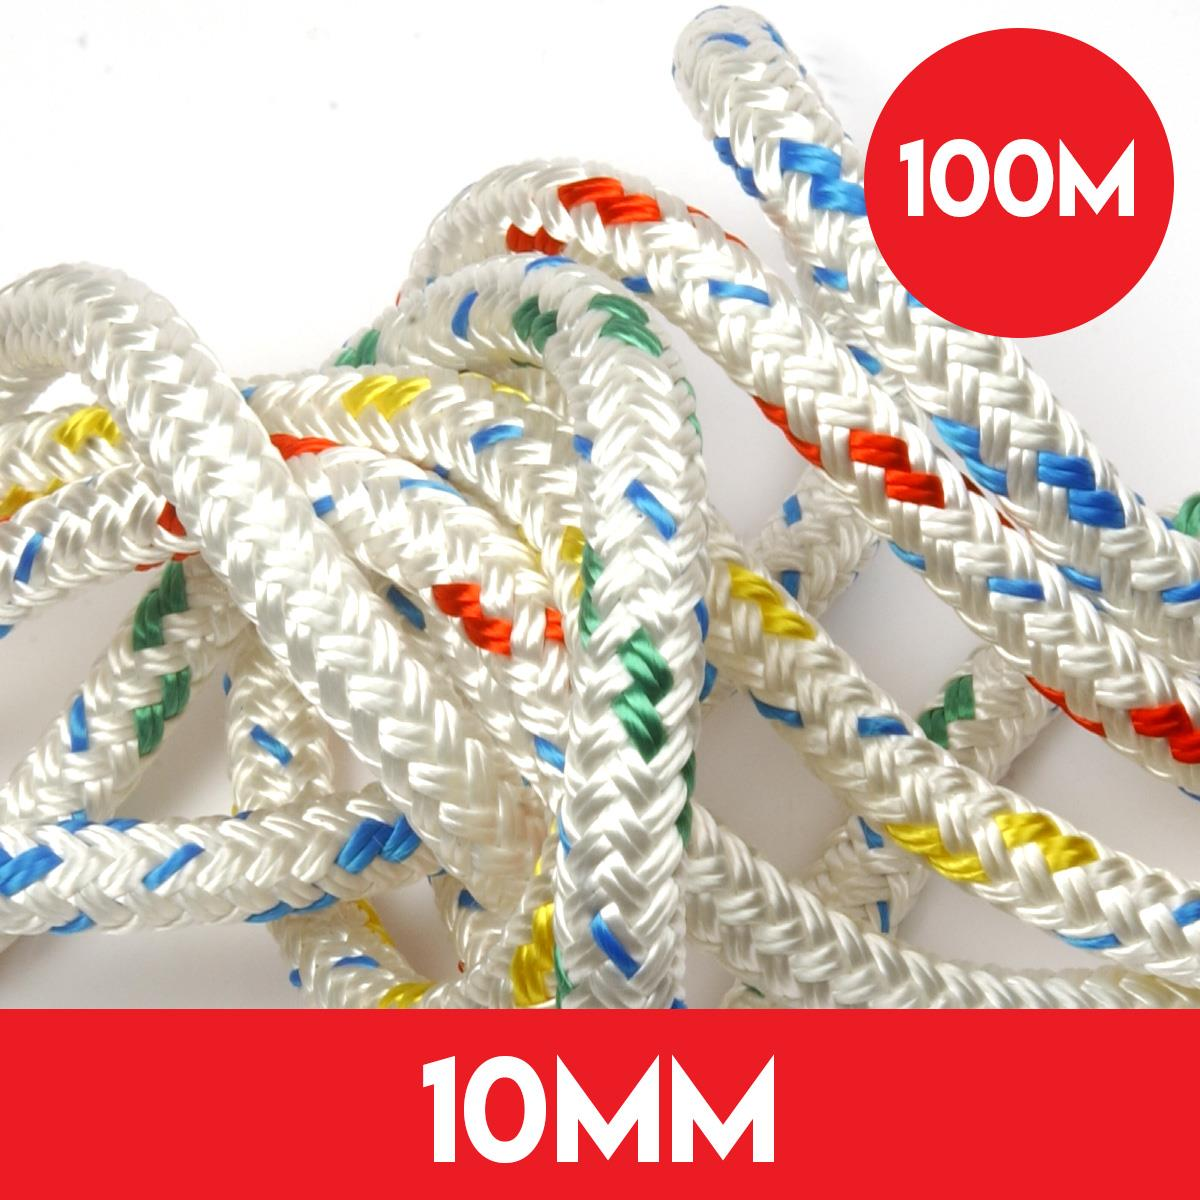 100m Reel of 10mm Polyester Braid on Braid Rope by Kingfisher